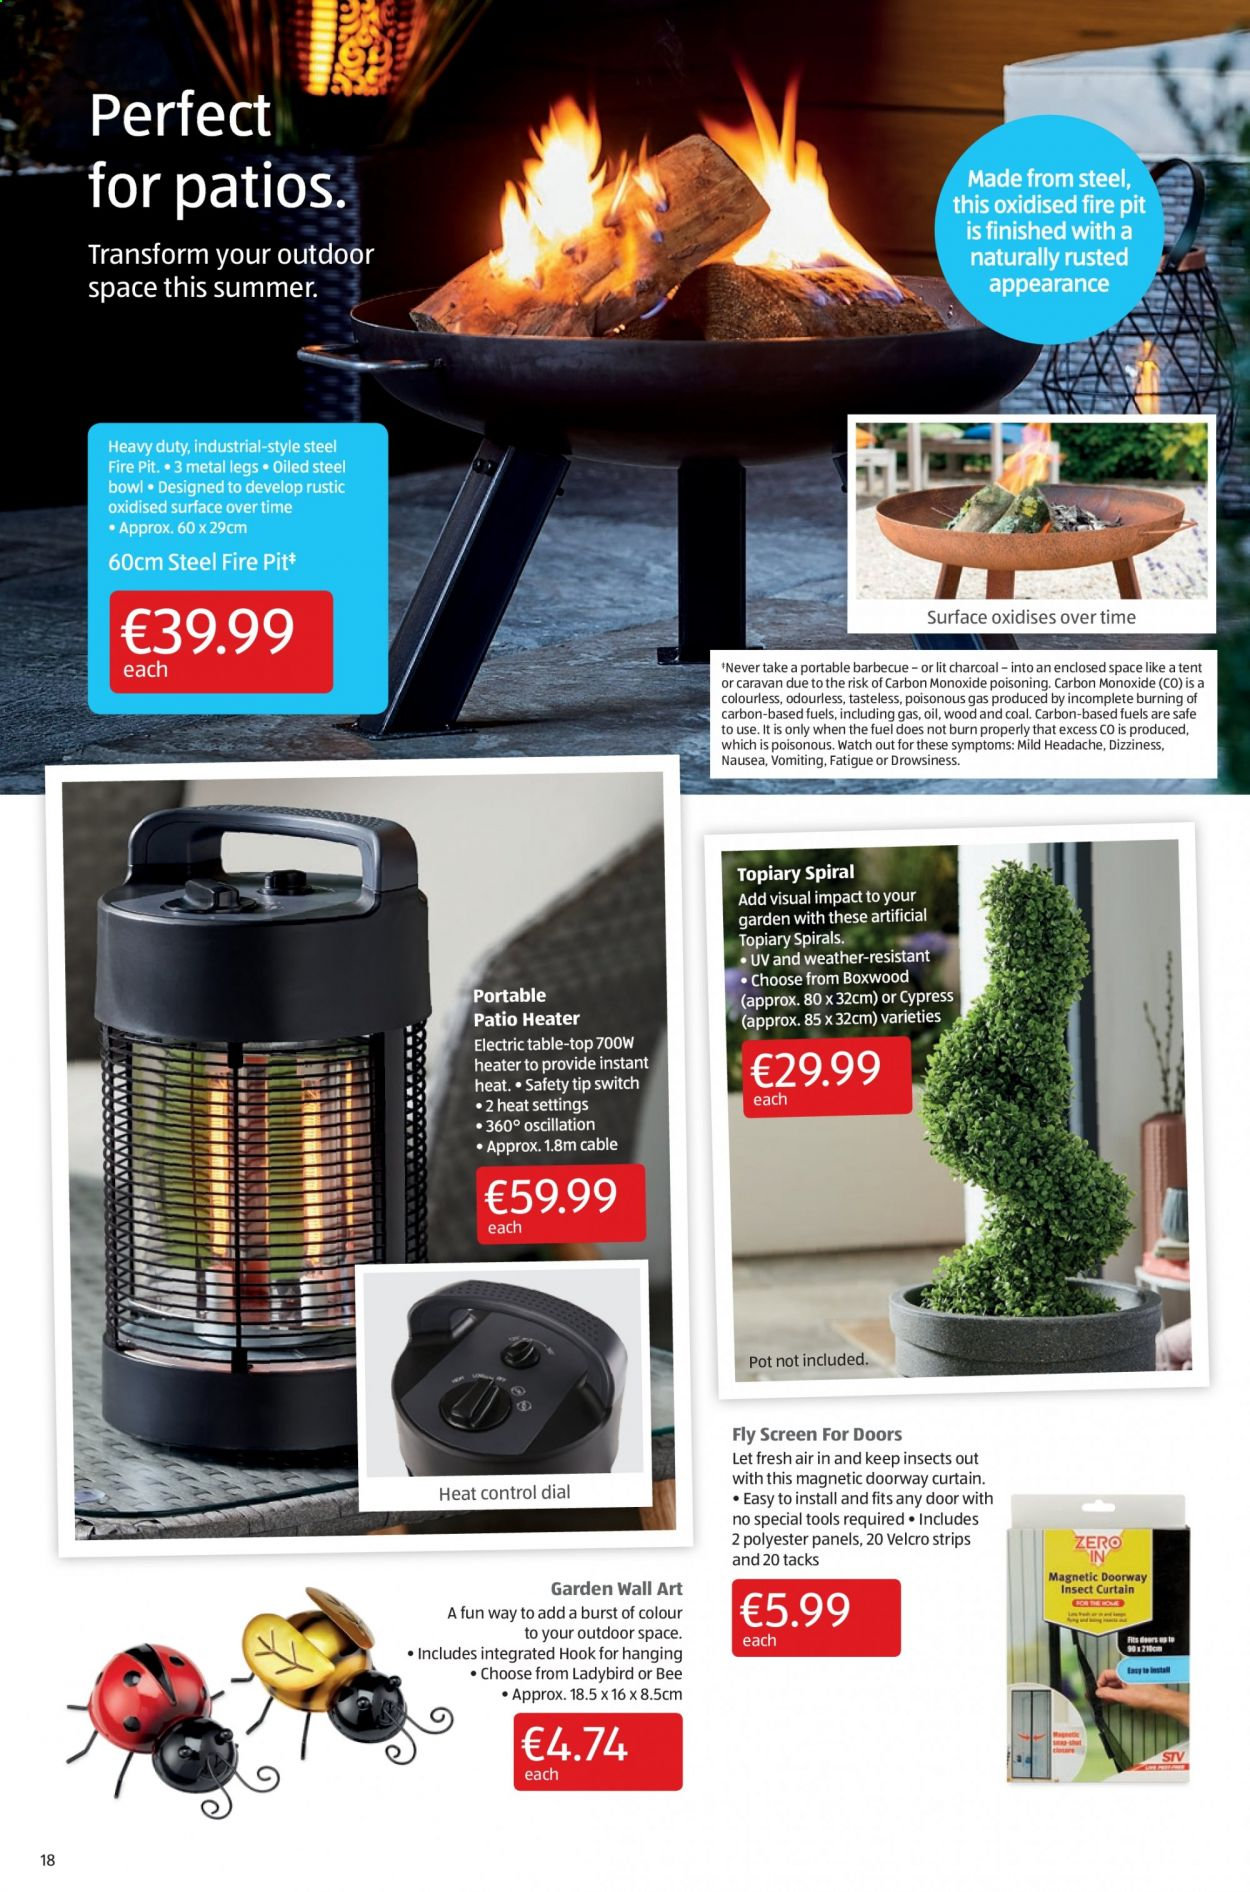 Aldi offer  - 16.7.2020 - 19.7.2020 - Sales products - bowl, curtains, door, fuel, safe, surface, switch, tent, watch, hook, pot, charcoal, patio, heater, control. Page 18.